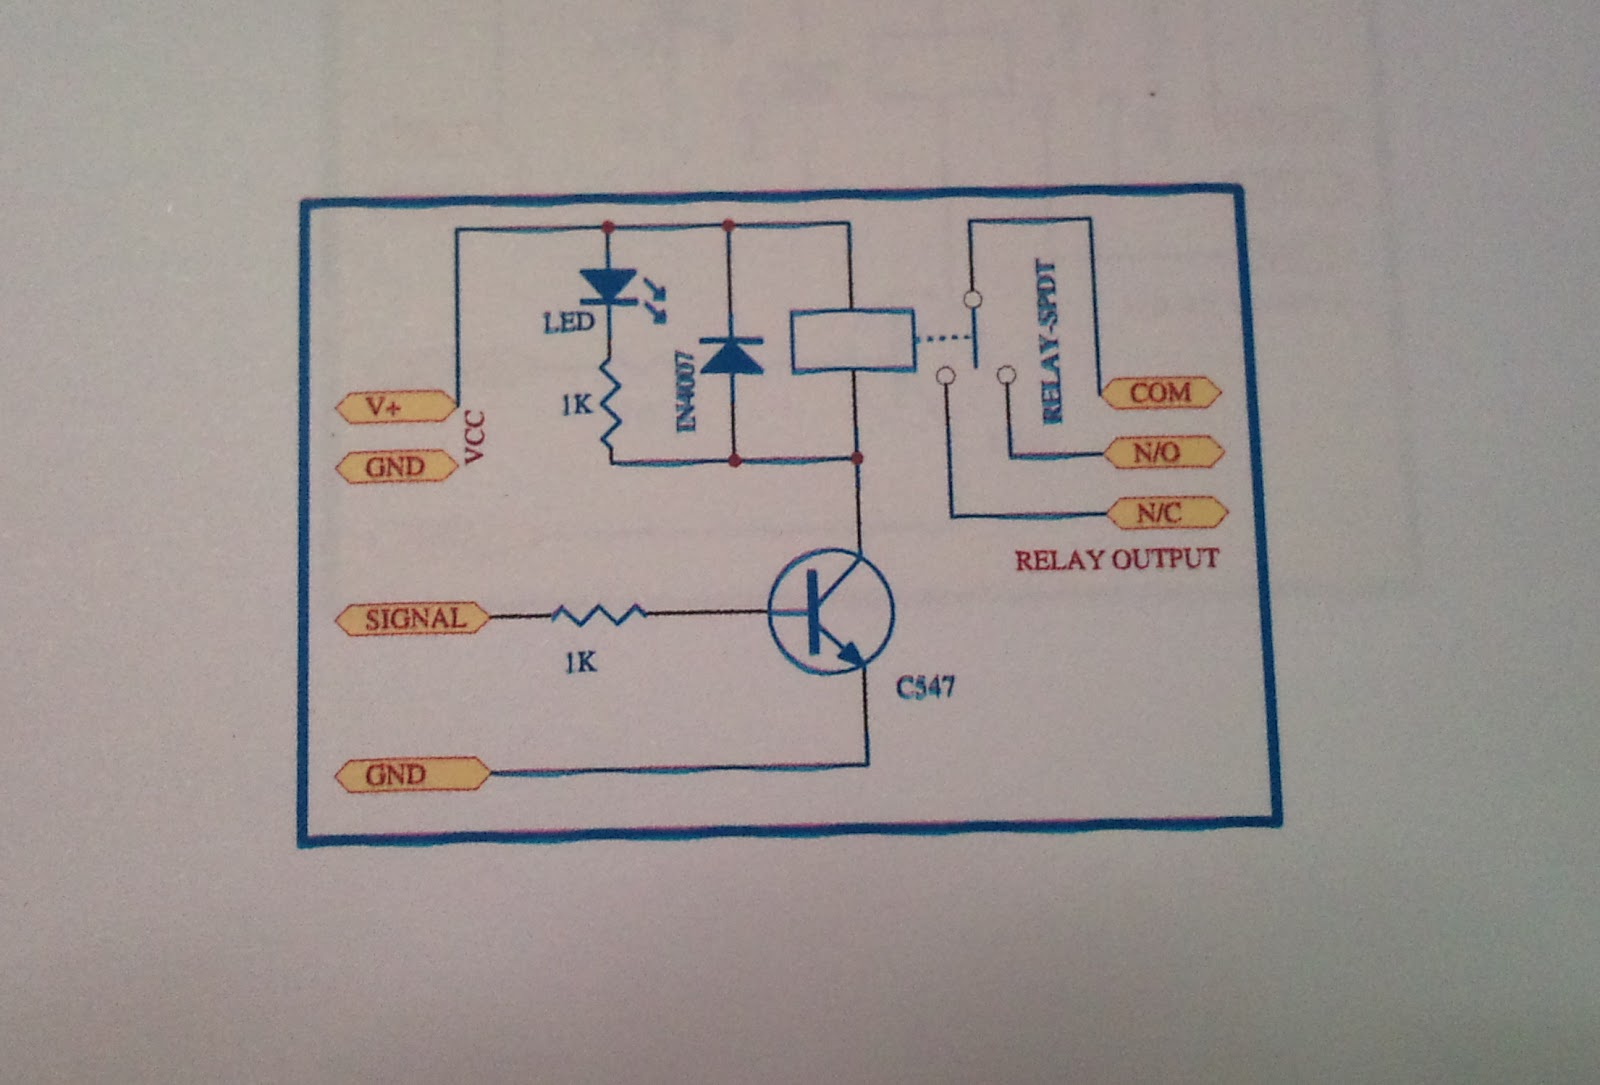 Final Year Project Home Patient Monitor Fyp Week 4 Switching Relay Switch Drawing Figure 2 Schematic Diagram Of The Circuit